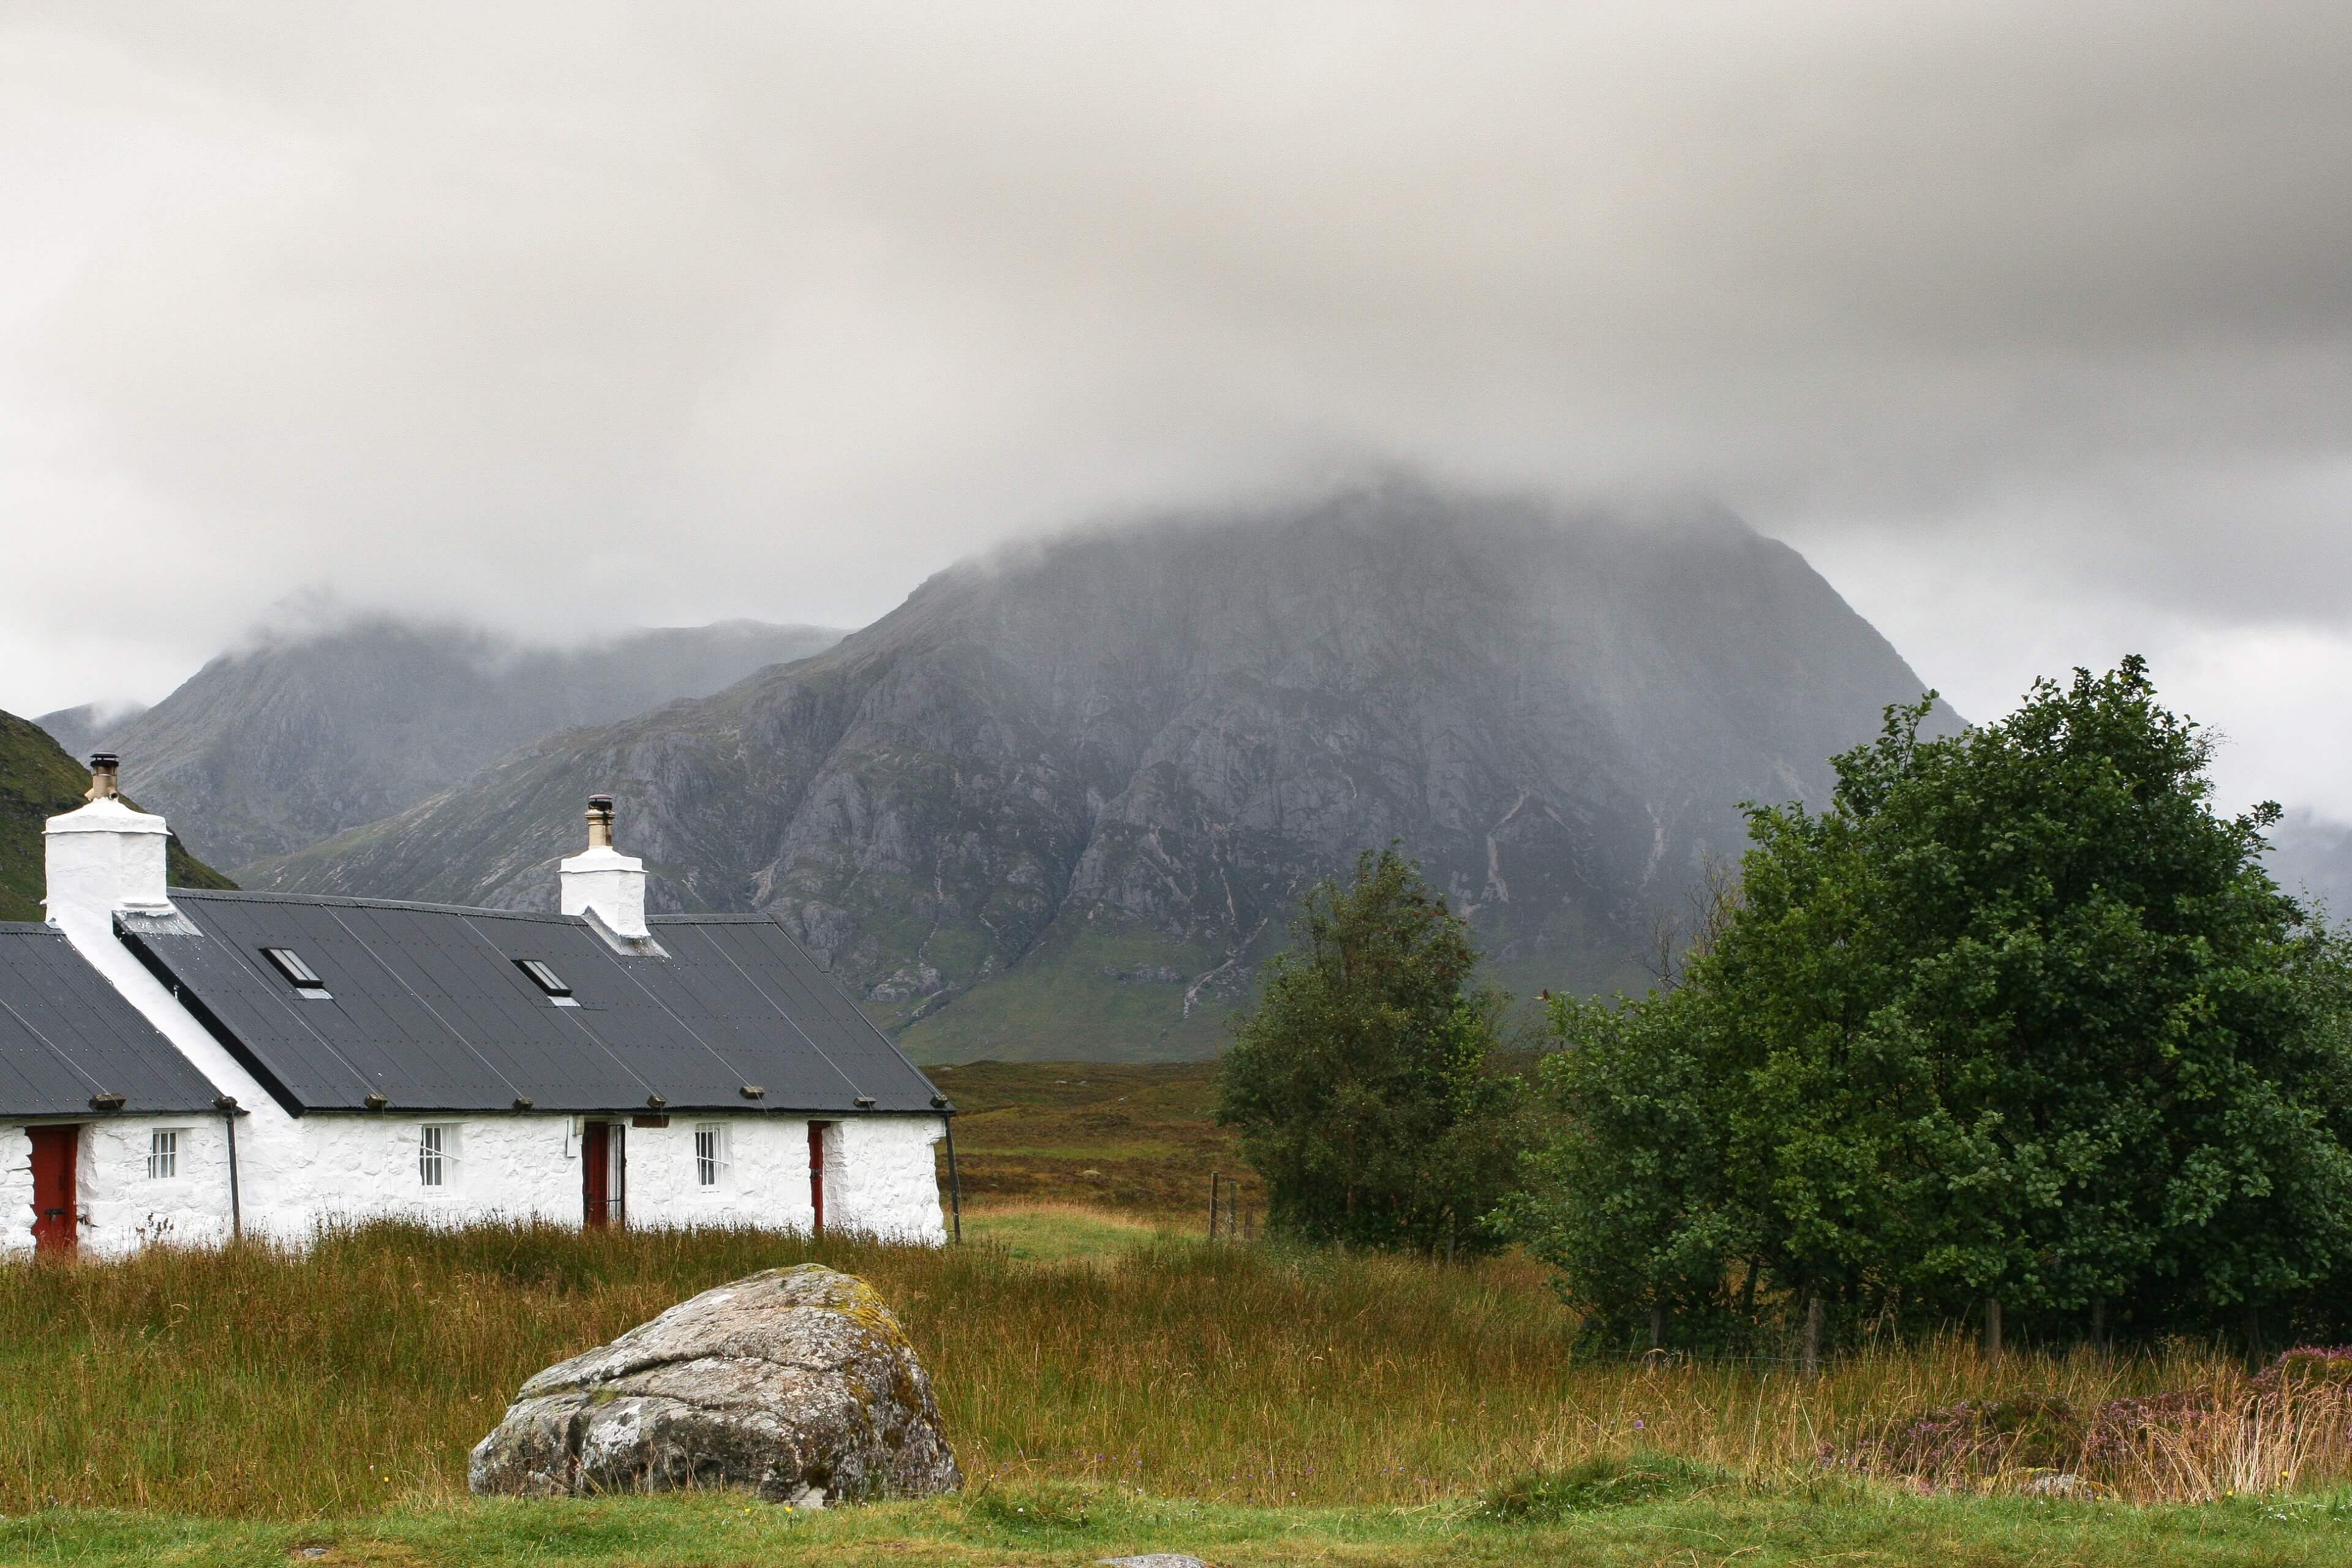 Cottages & Stob Dearg